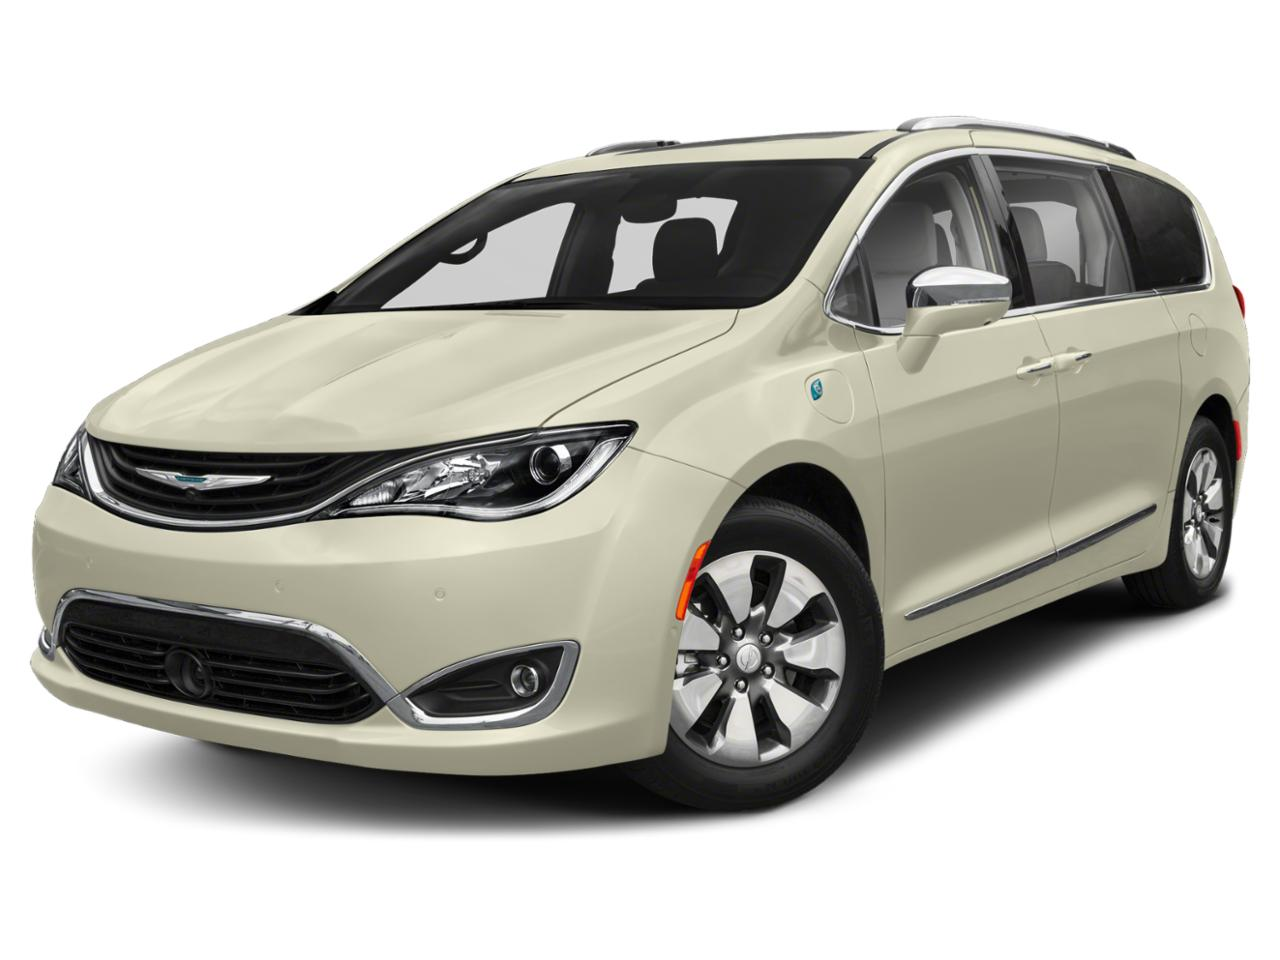 2017 Chrysler Pacifica Vehicle Photo in Bowie, MD 20716